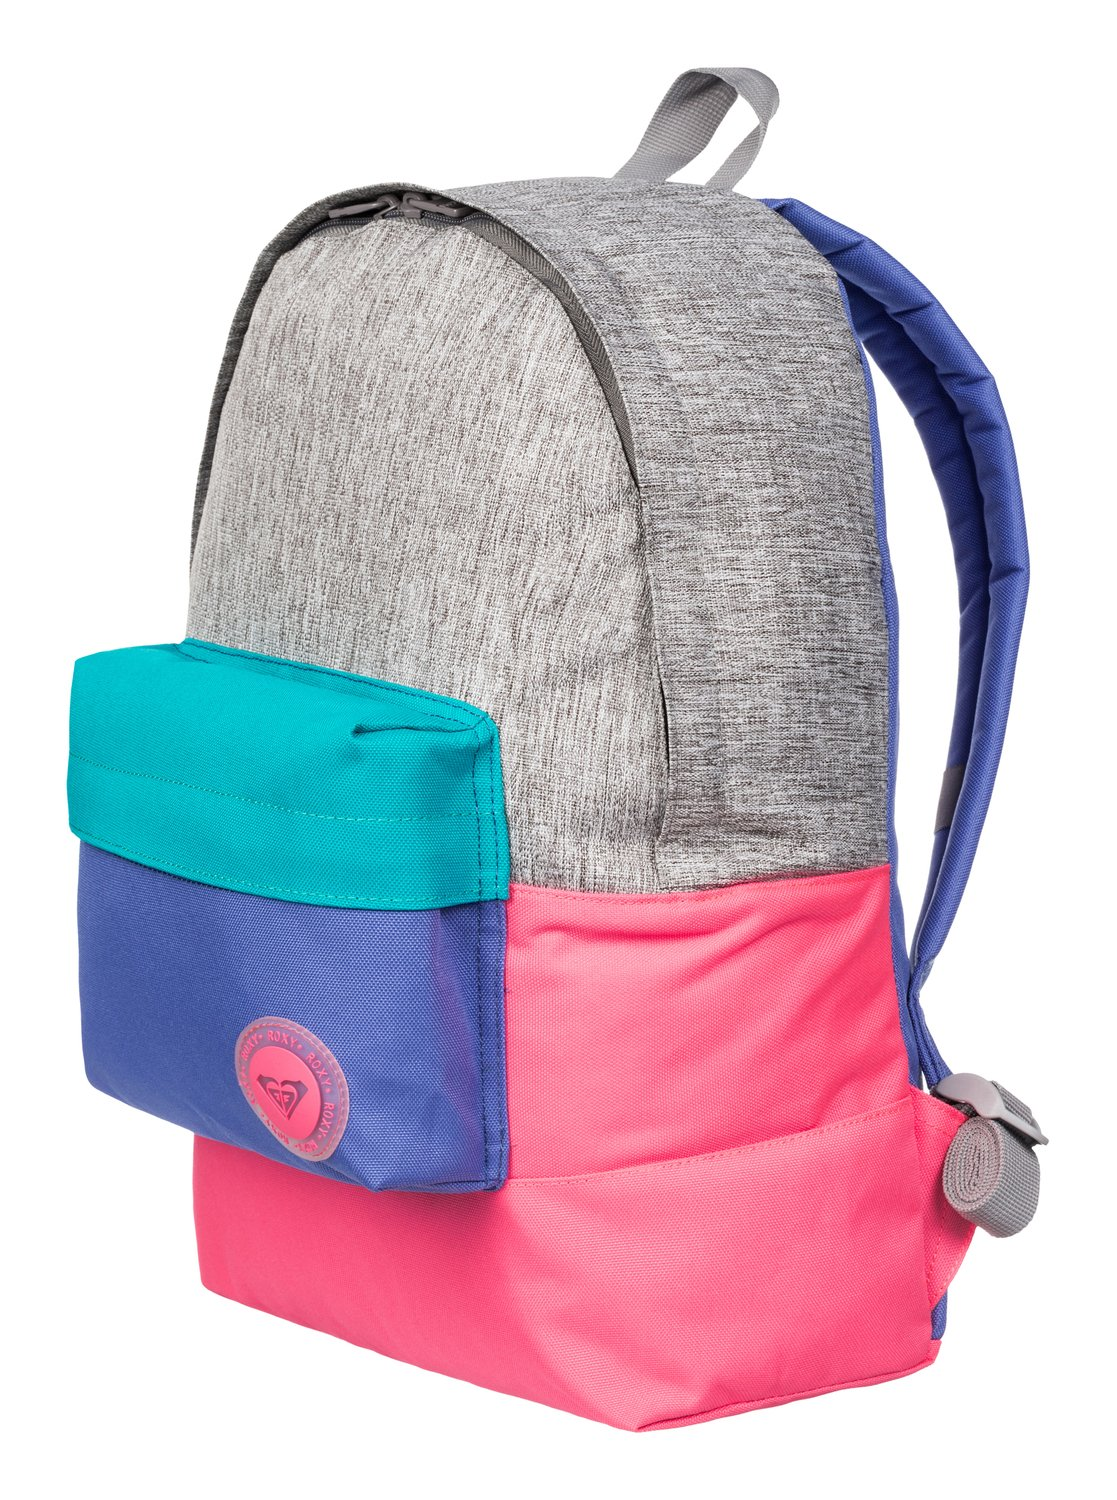 Colorblock Erjbp03169 1 Mochila Roxy Baby Sugar zZ0RE